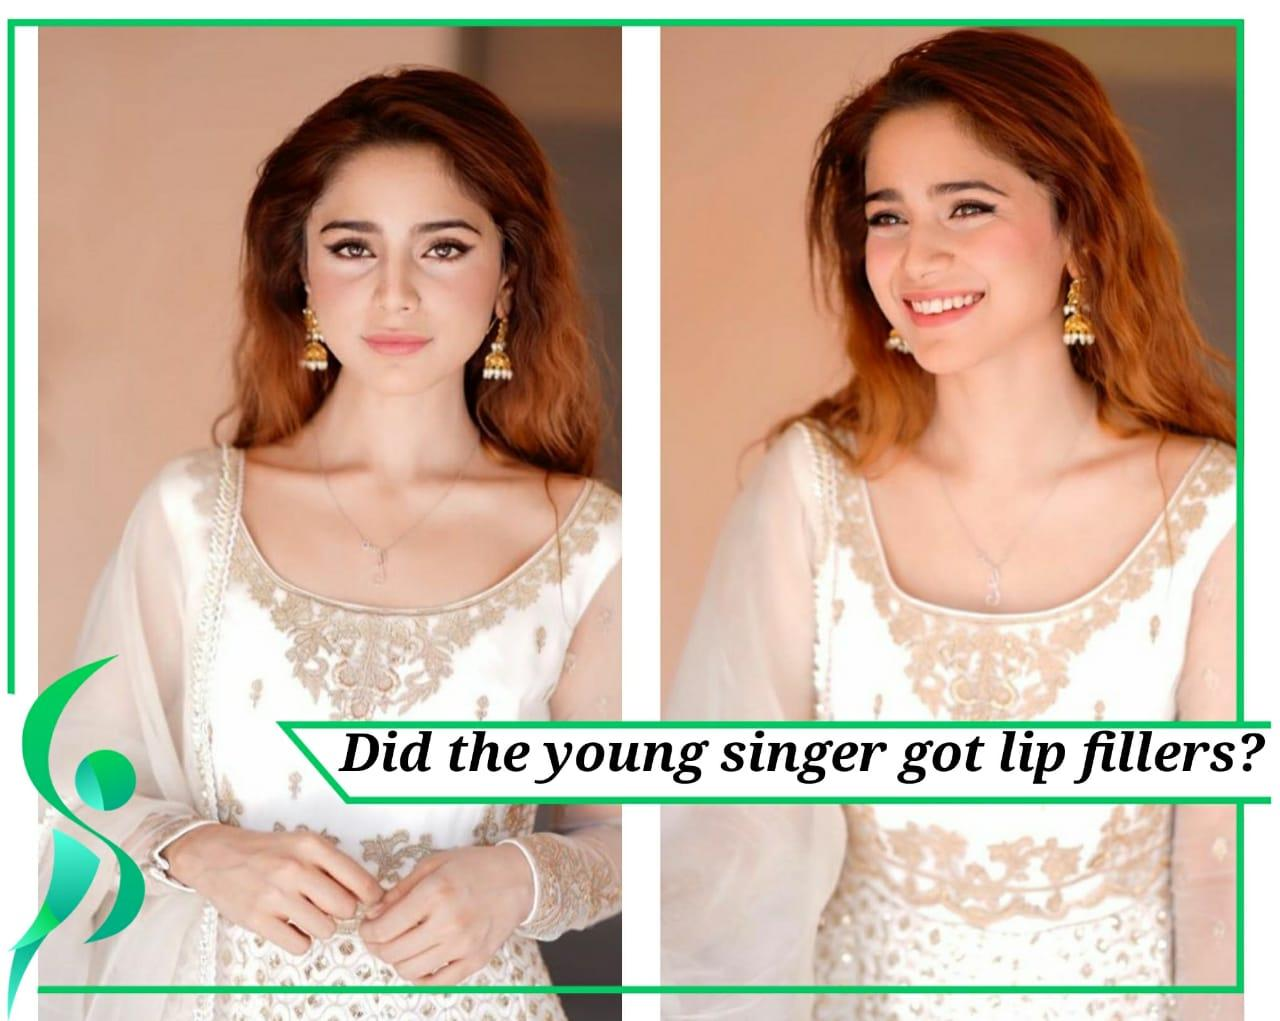 Aima Baig got lip fillers.